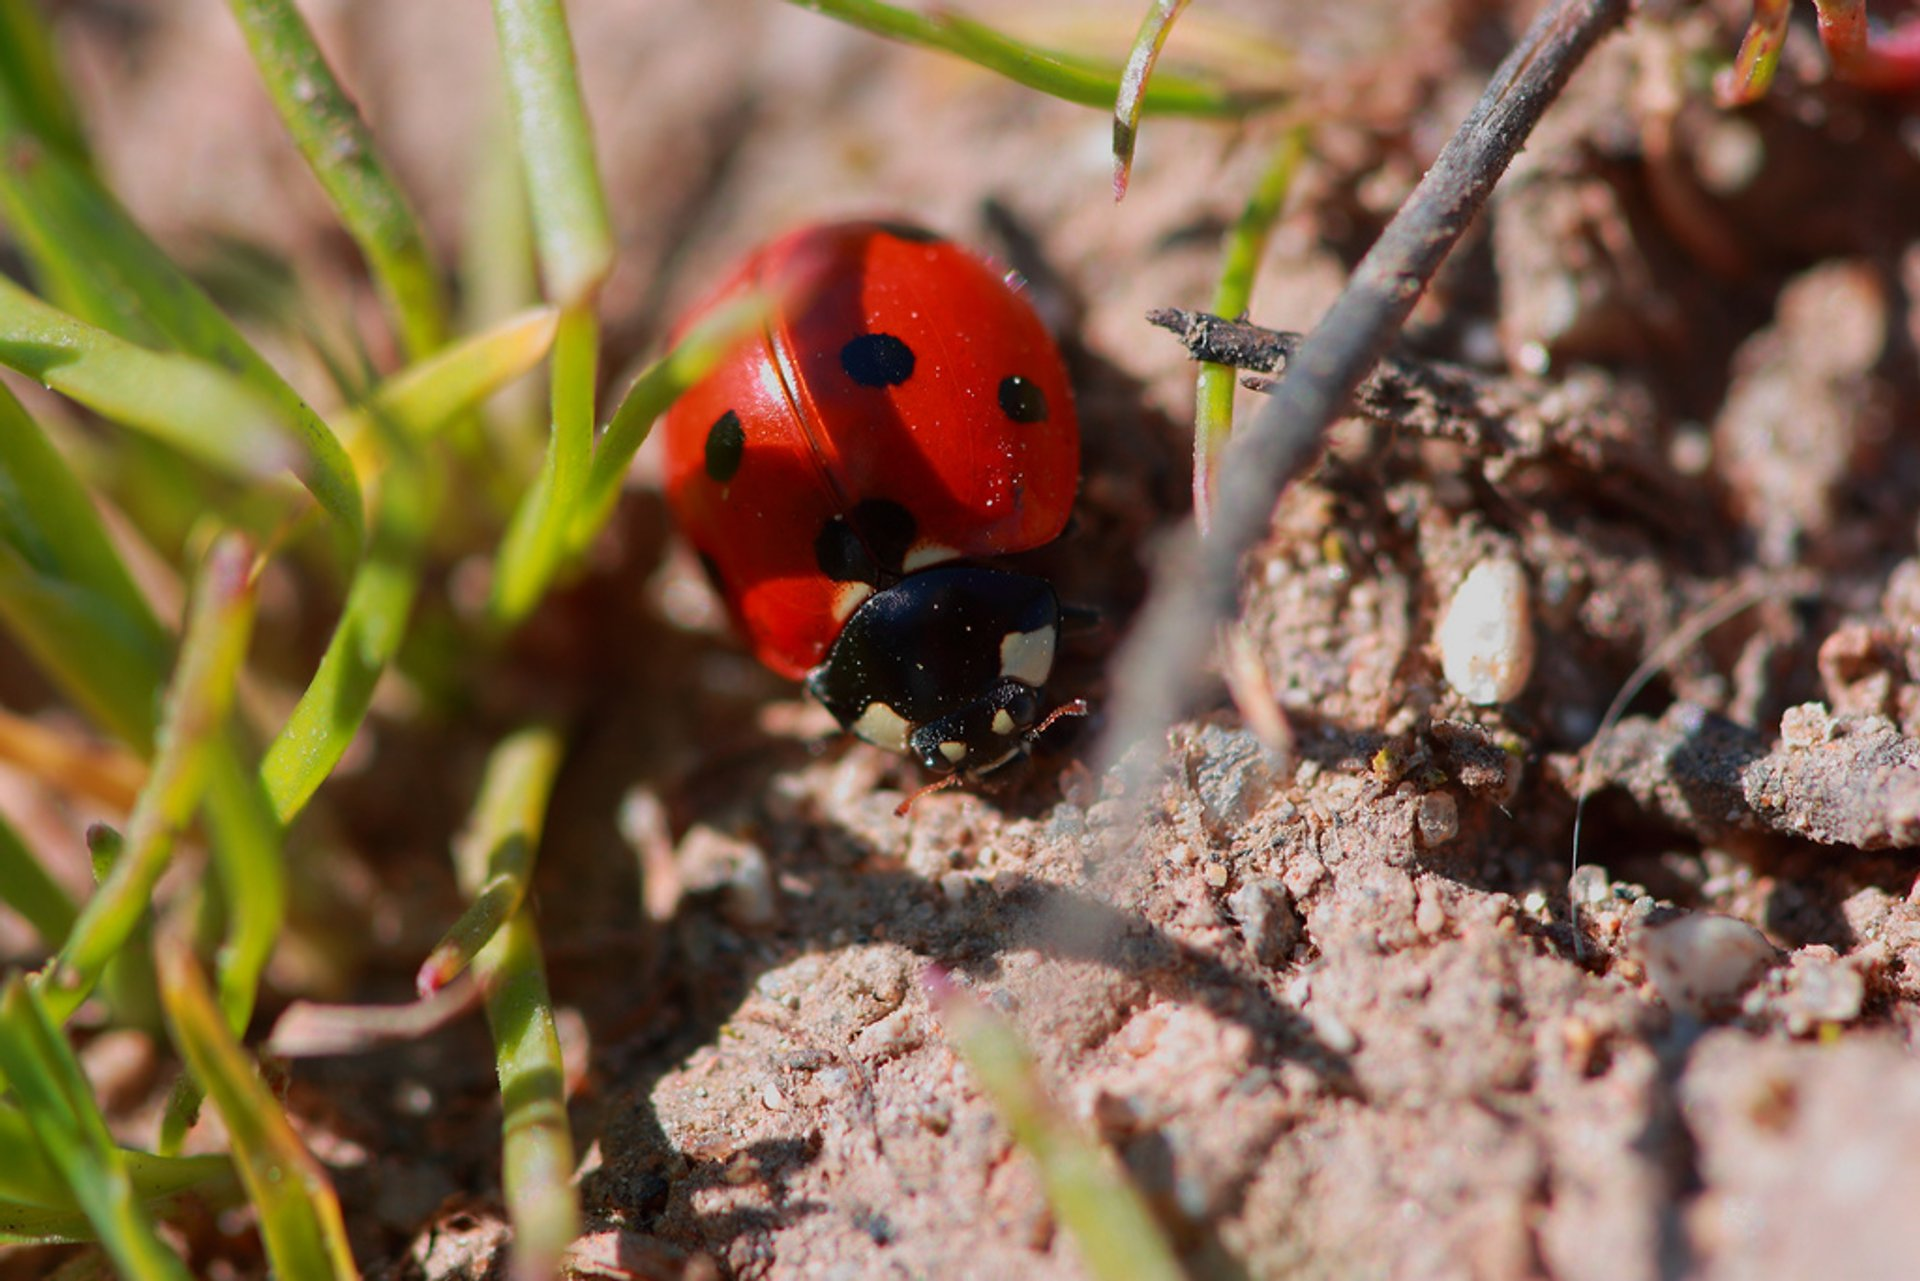 Ladybug near McClellan Park, California, United States 2020